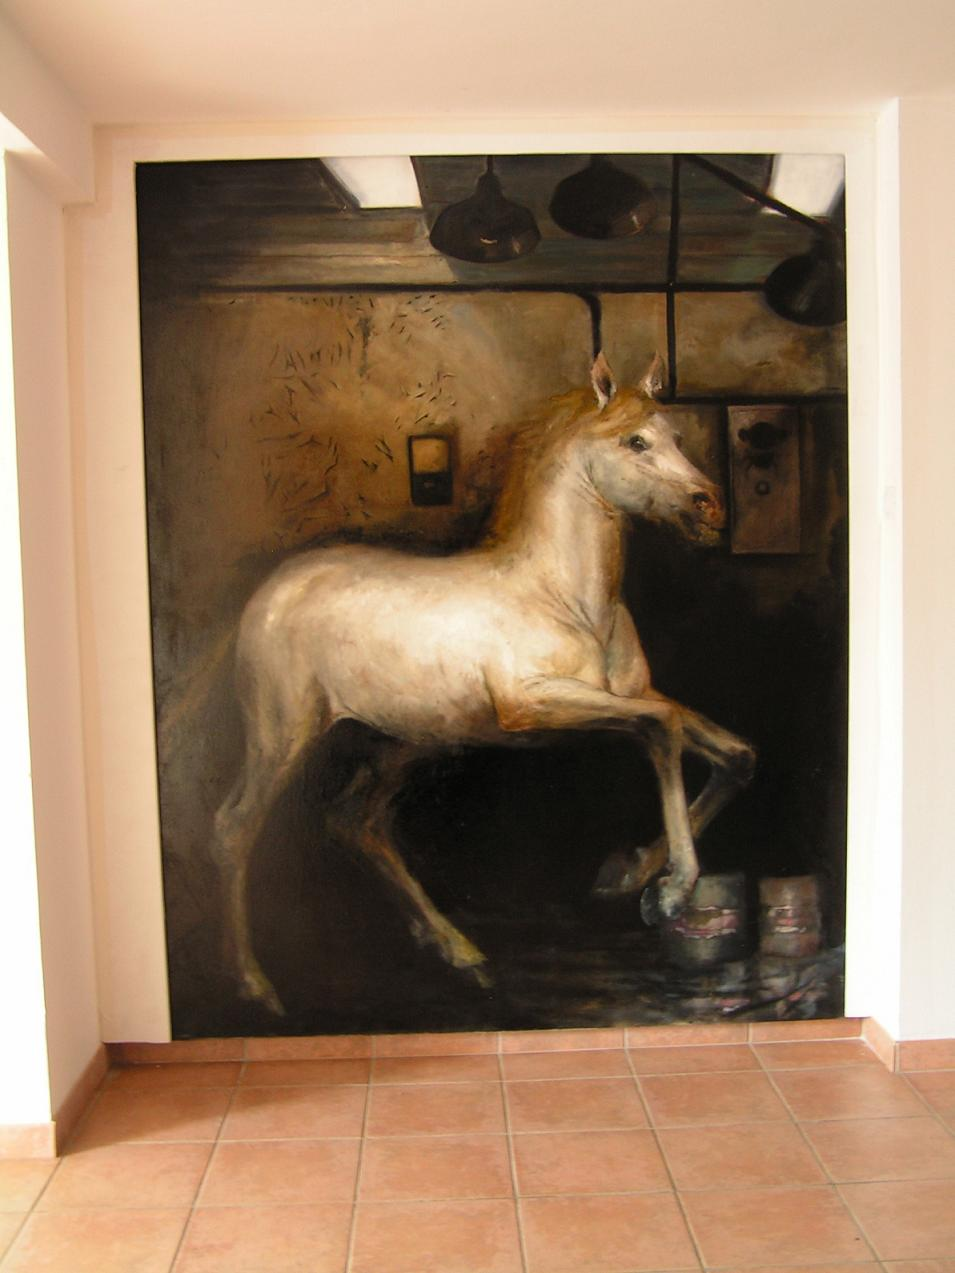 Neurotic horses II, for private interier, oil on canvas, 180 x 220 cm, 2015